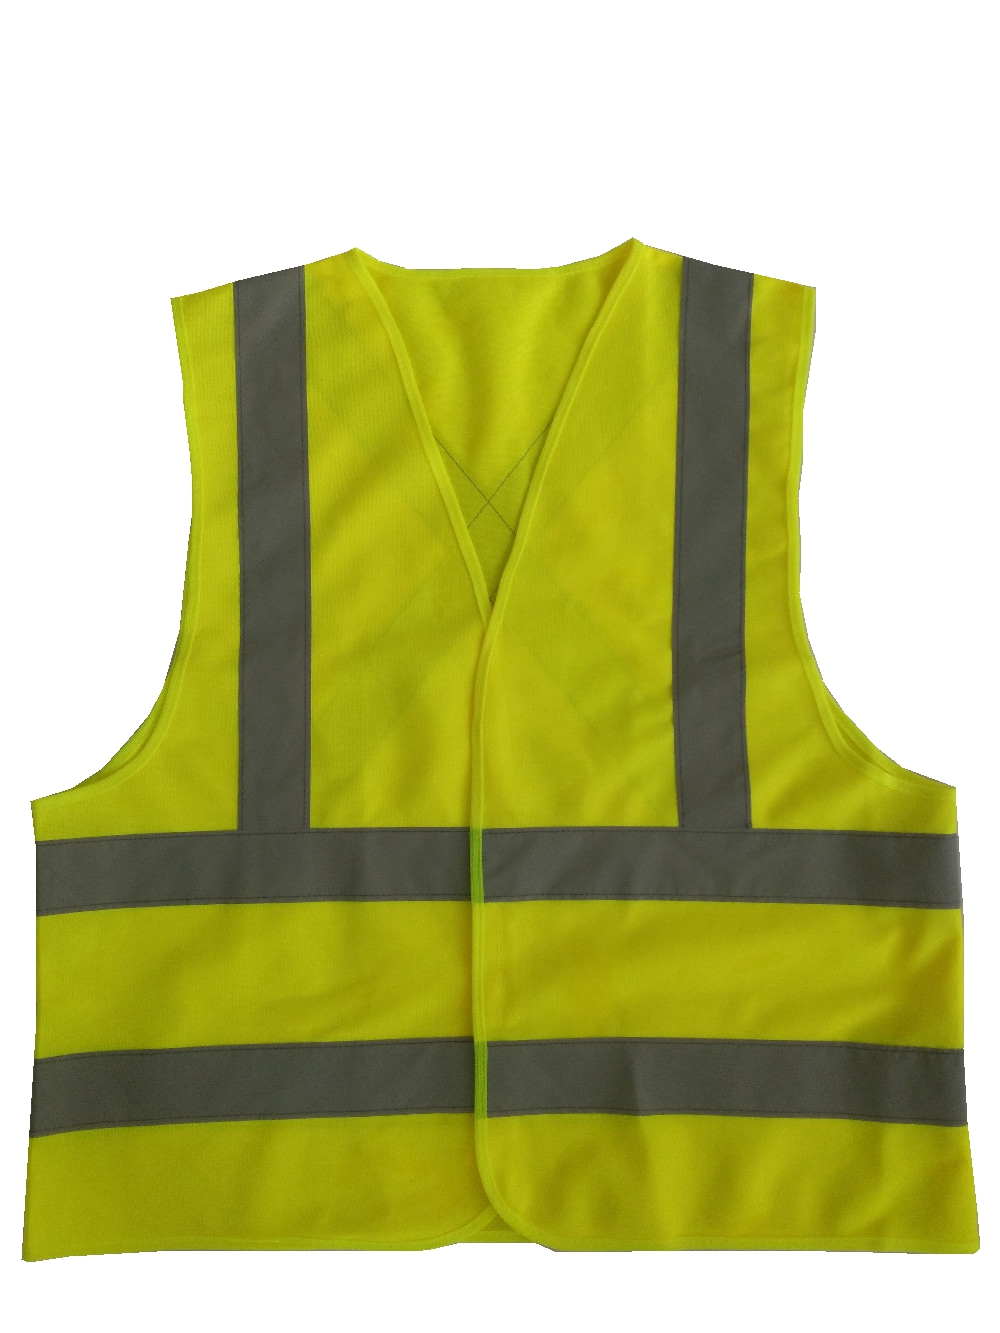 Yellow Reflective Vest Reflective Jacket High visibility knitted reflective safety vest logo printing Vest Safety on Road fluorescence yellow high visibility